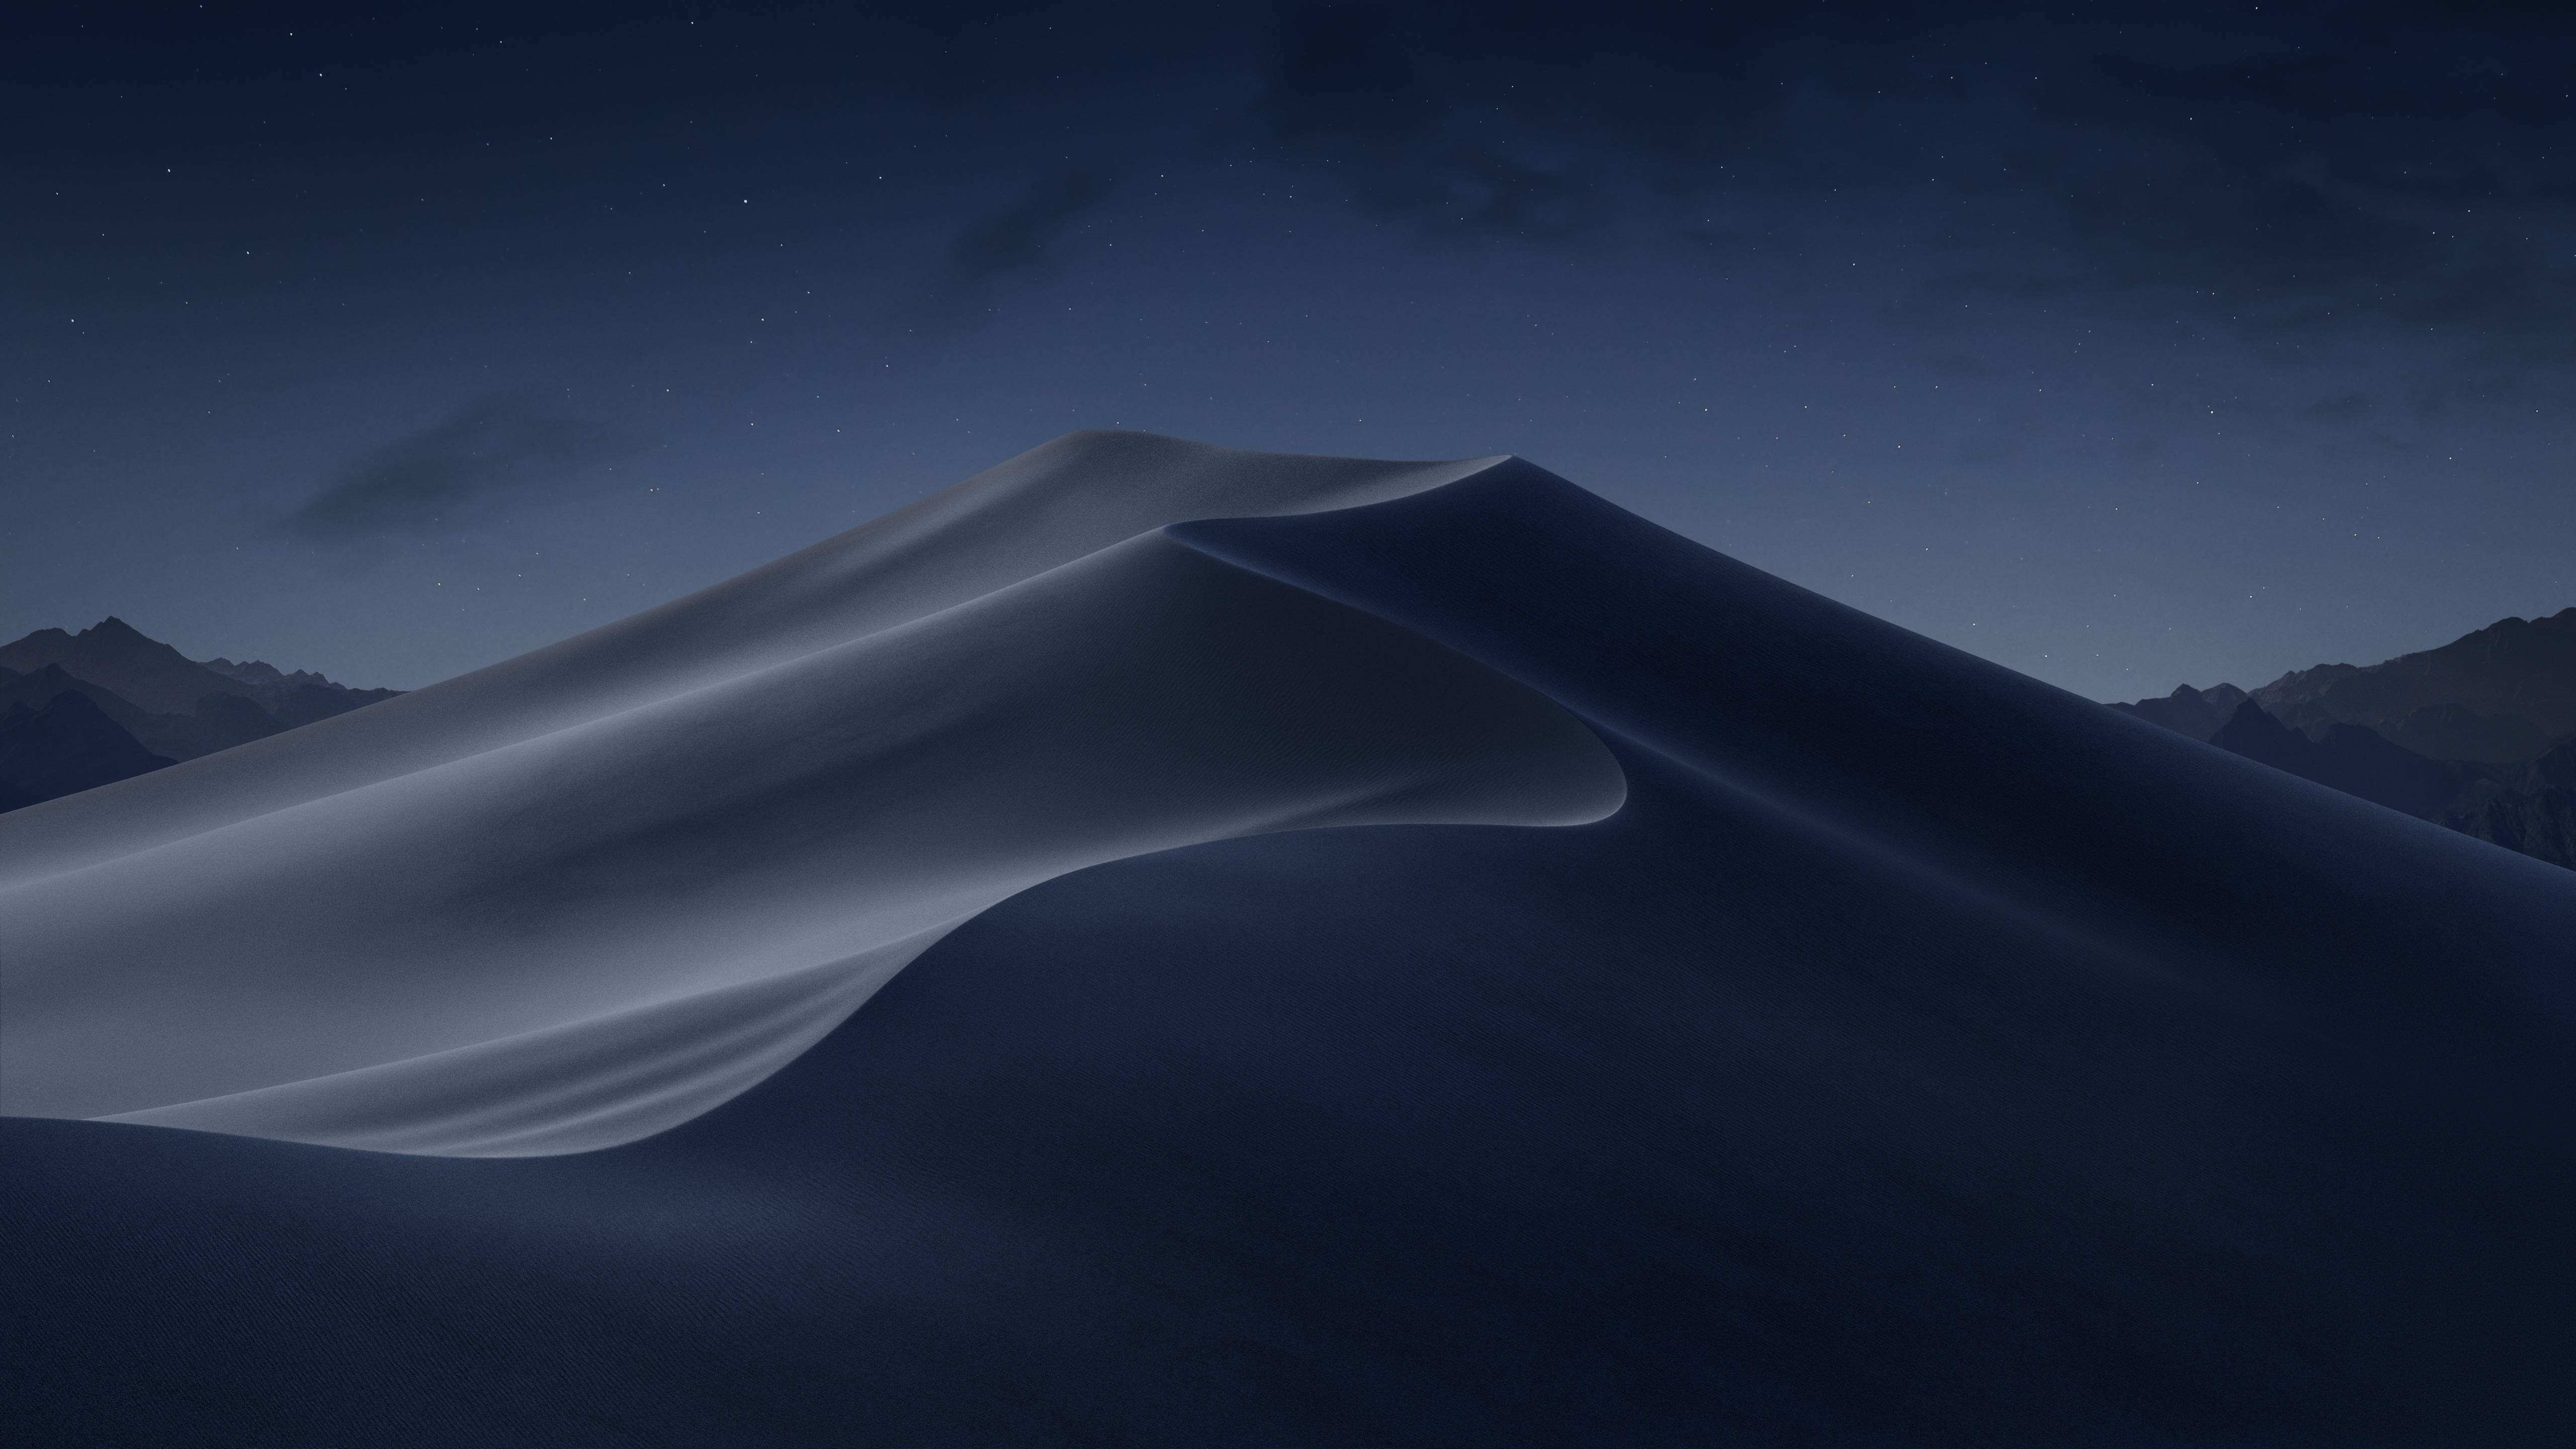 macOS Mojave Night Desert